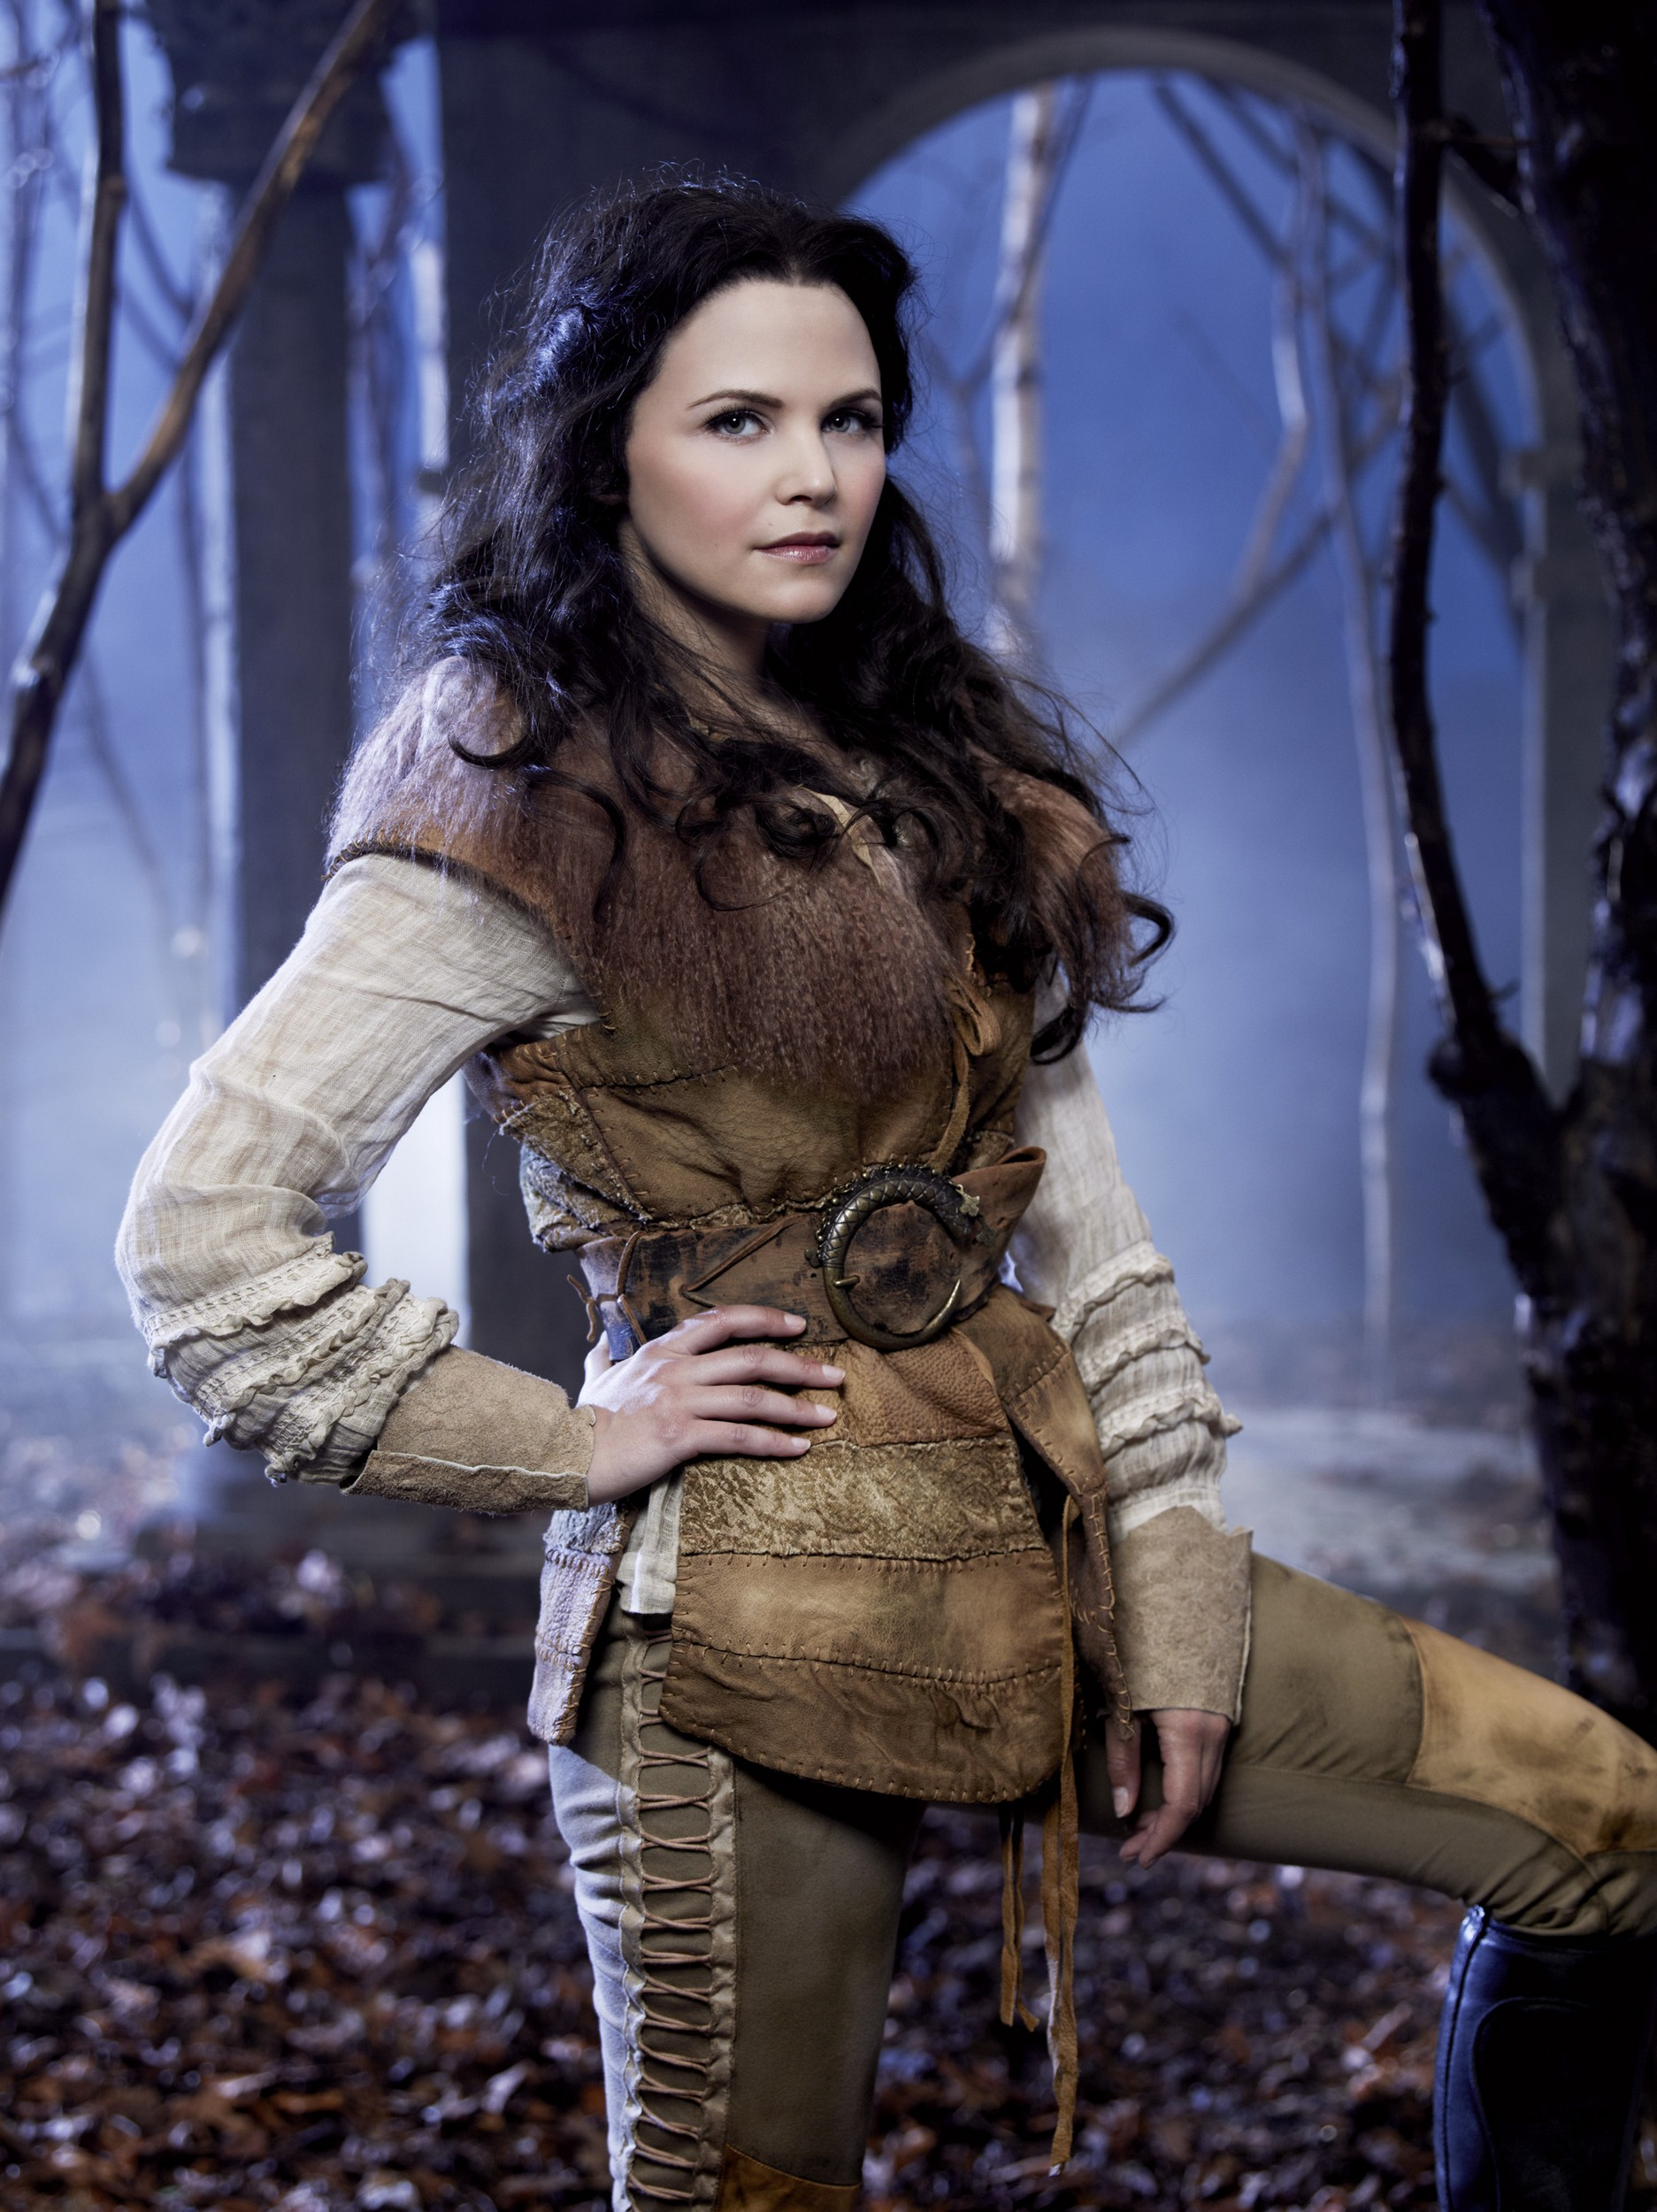 Cosplay - Snow White on Pinterest | Once Upon A Time, Snow ...